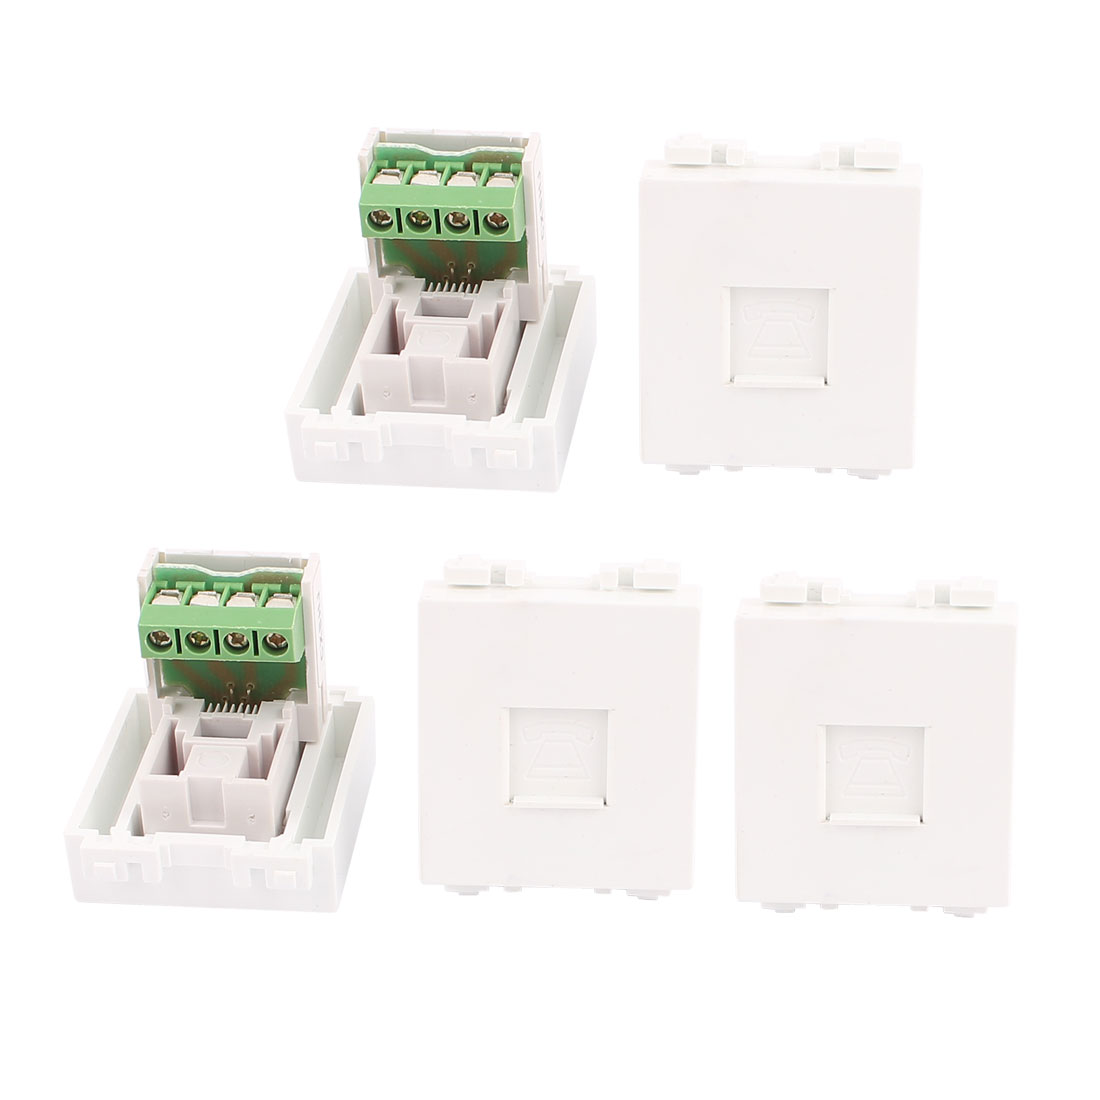 5Pcs RJ11 8P4C Phone Coupler Connector Modular Socket for 128 Wall Plate Panel